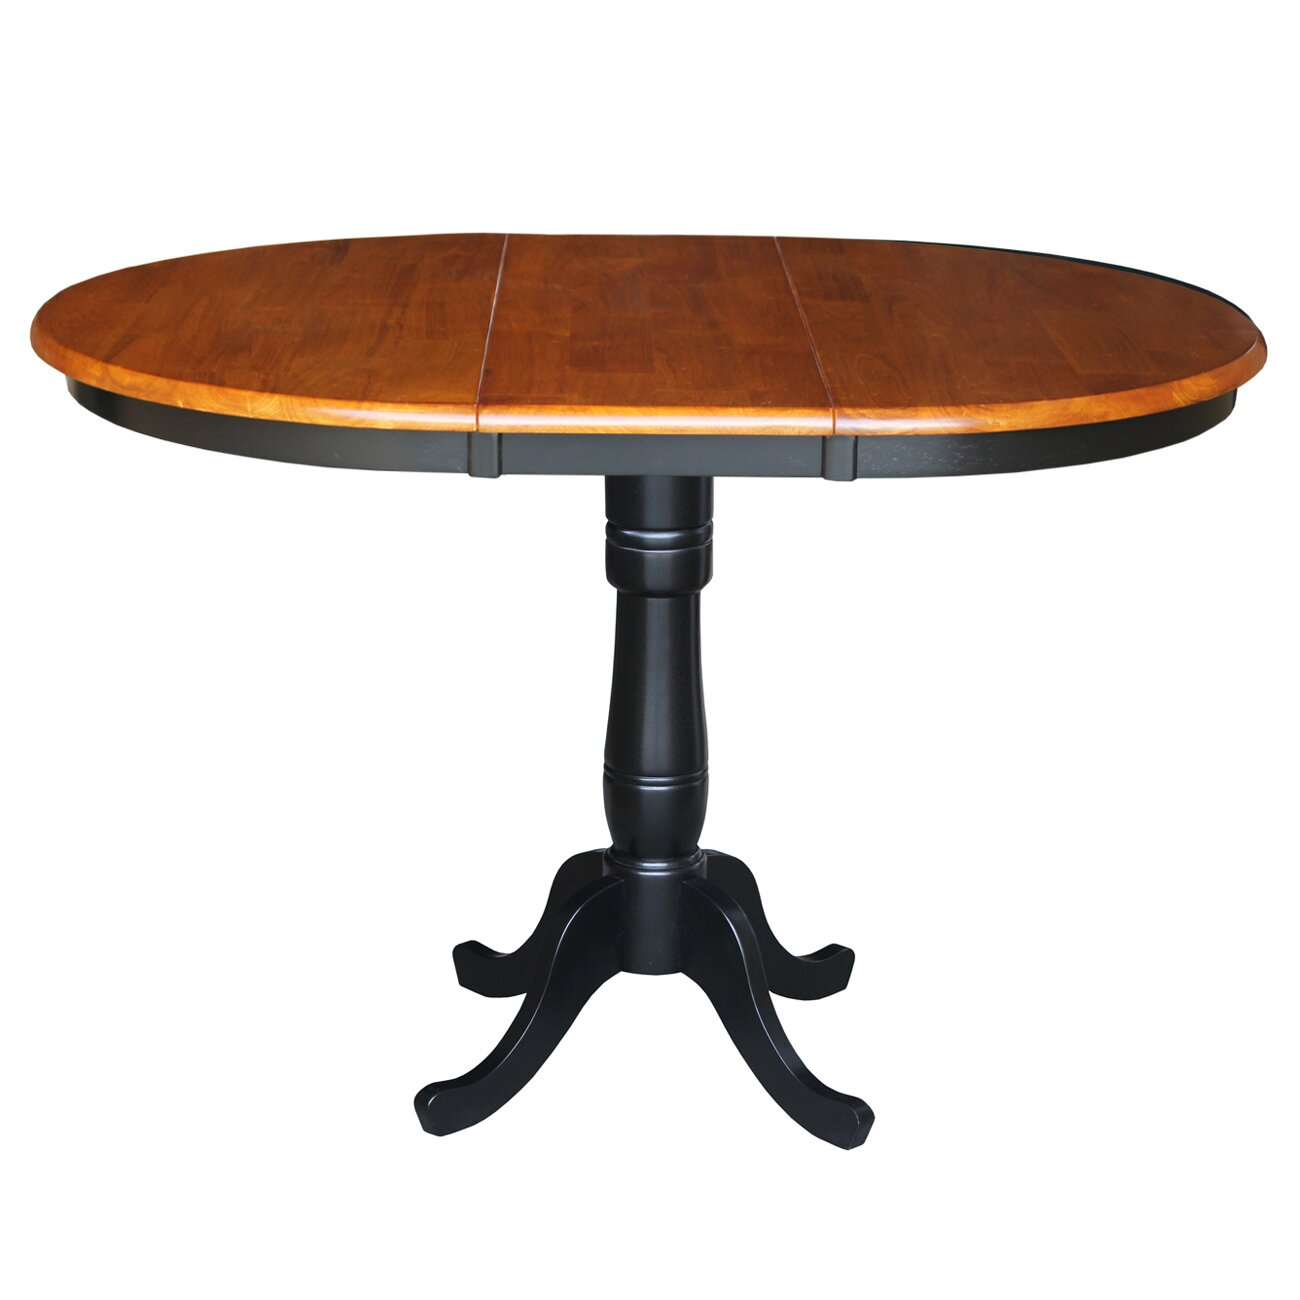 International concepts round pedestal bar height pub table for Round pedestal table with leaf